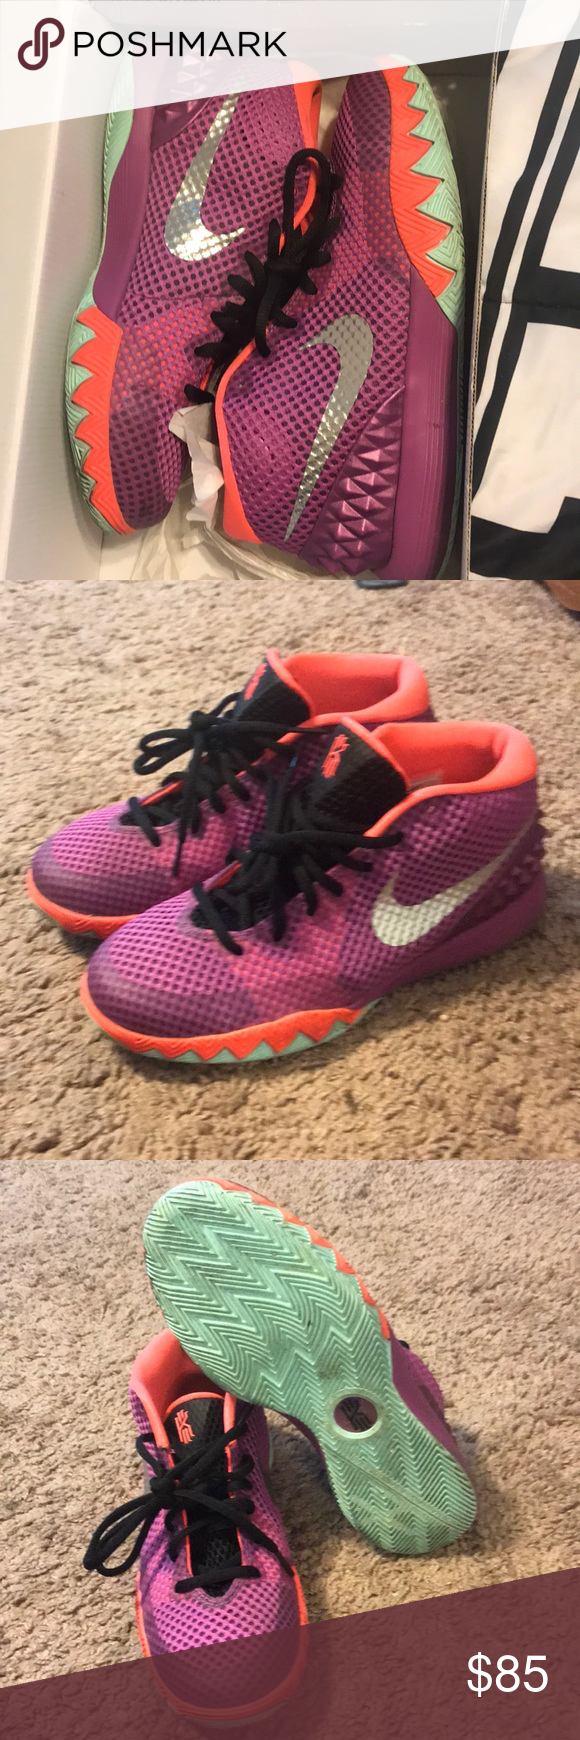 """the best attitude 6eef2 45a2f Kyrie 1 """"Easter"""" Medium Berry Hot Lava Black Metallic Silver Nike Kyrie 1  Condition 8 10 Box included Fits size 7.5 in women 5.5 in youth Nike Shoes  ..."""